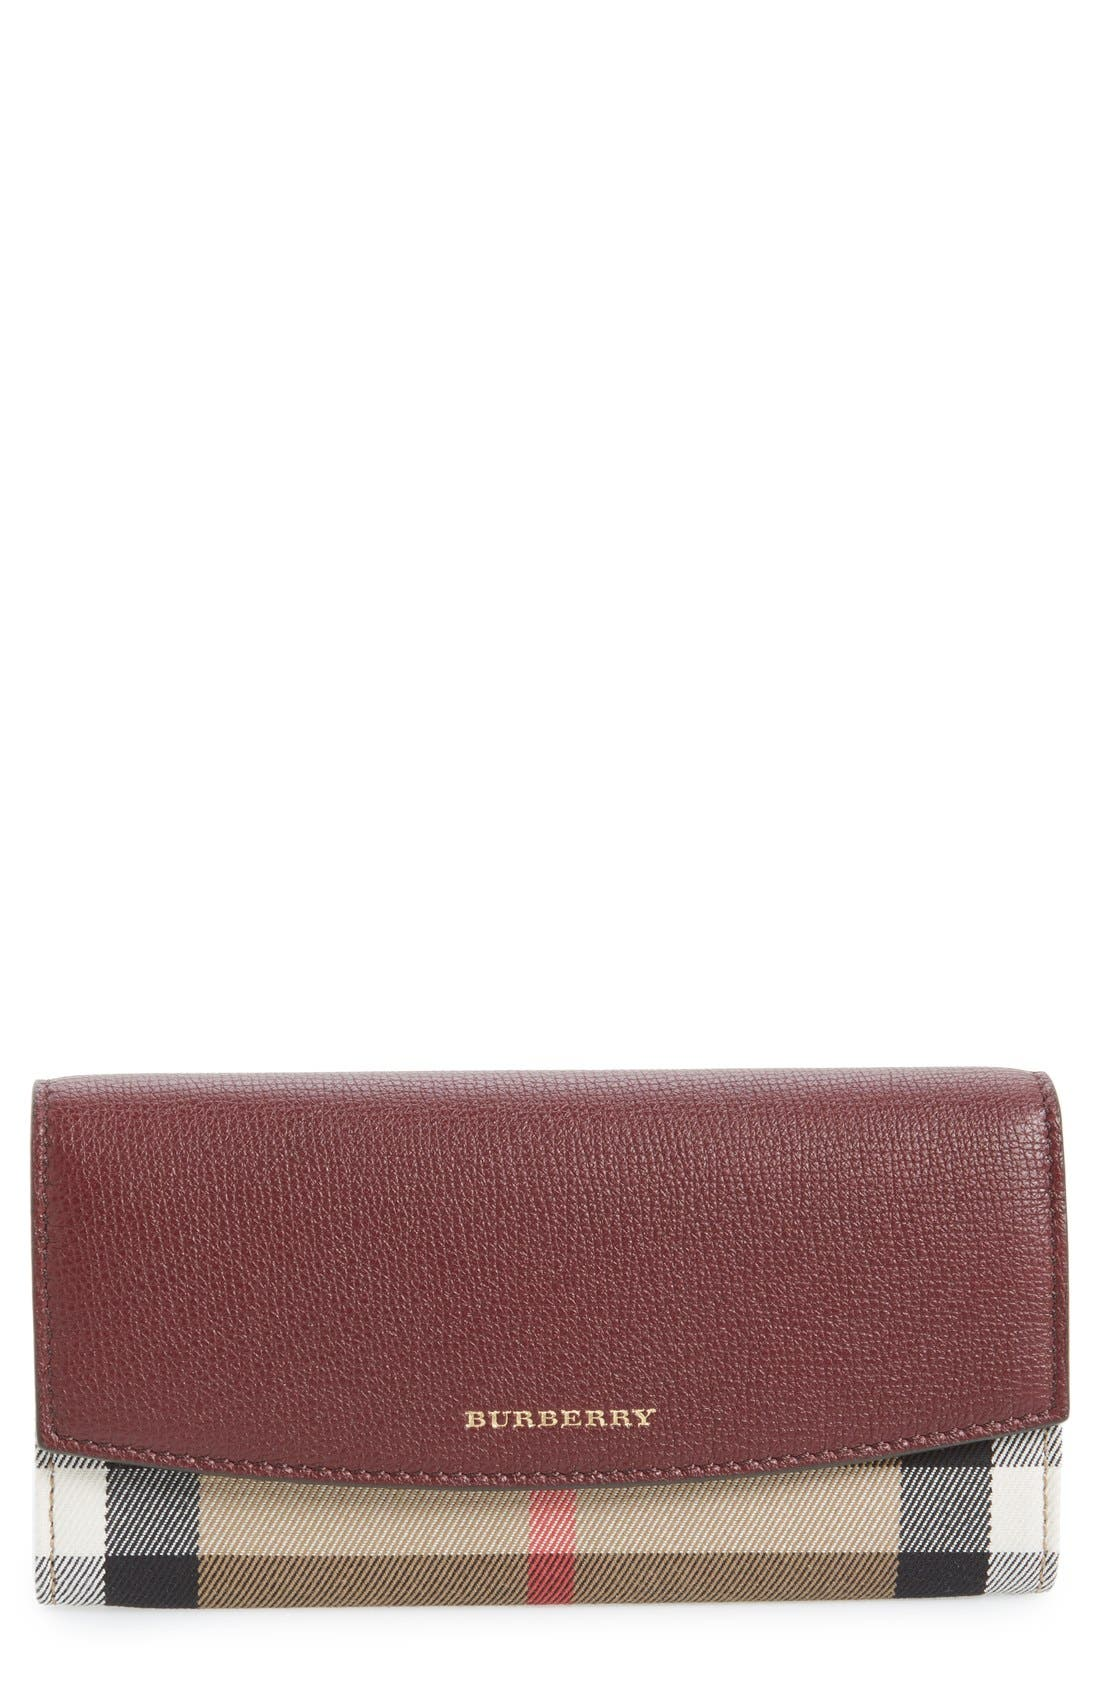 BURBERRY Porter - Check Continental Wallet